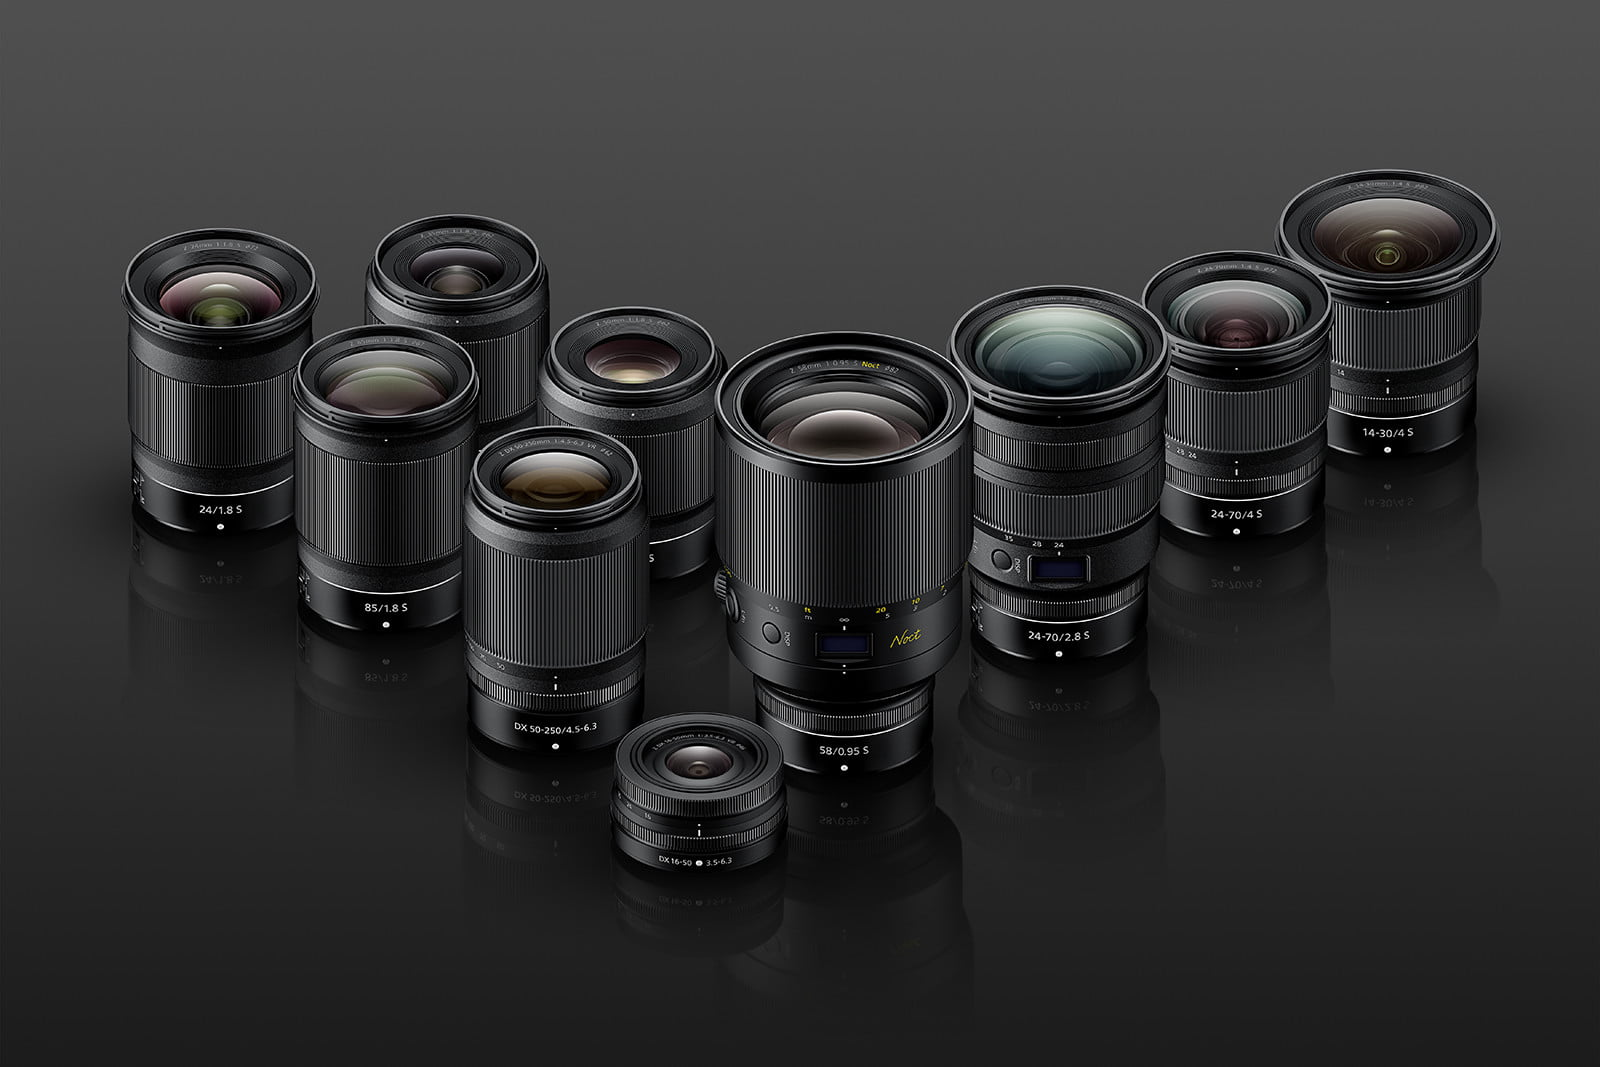 nikkor z 58mm f095 s noct unveiled lens lineup oct2019